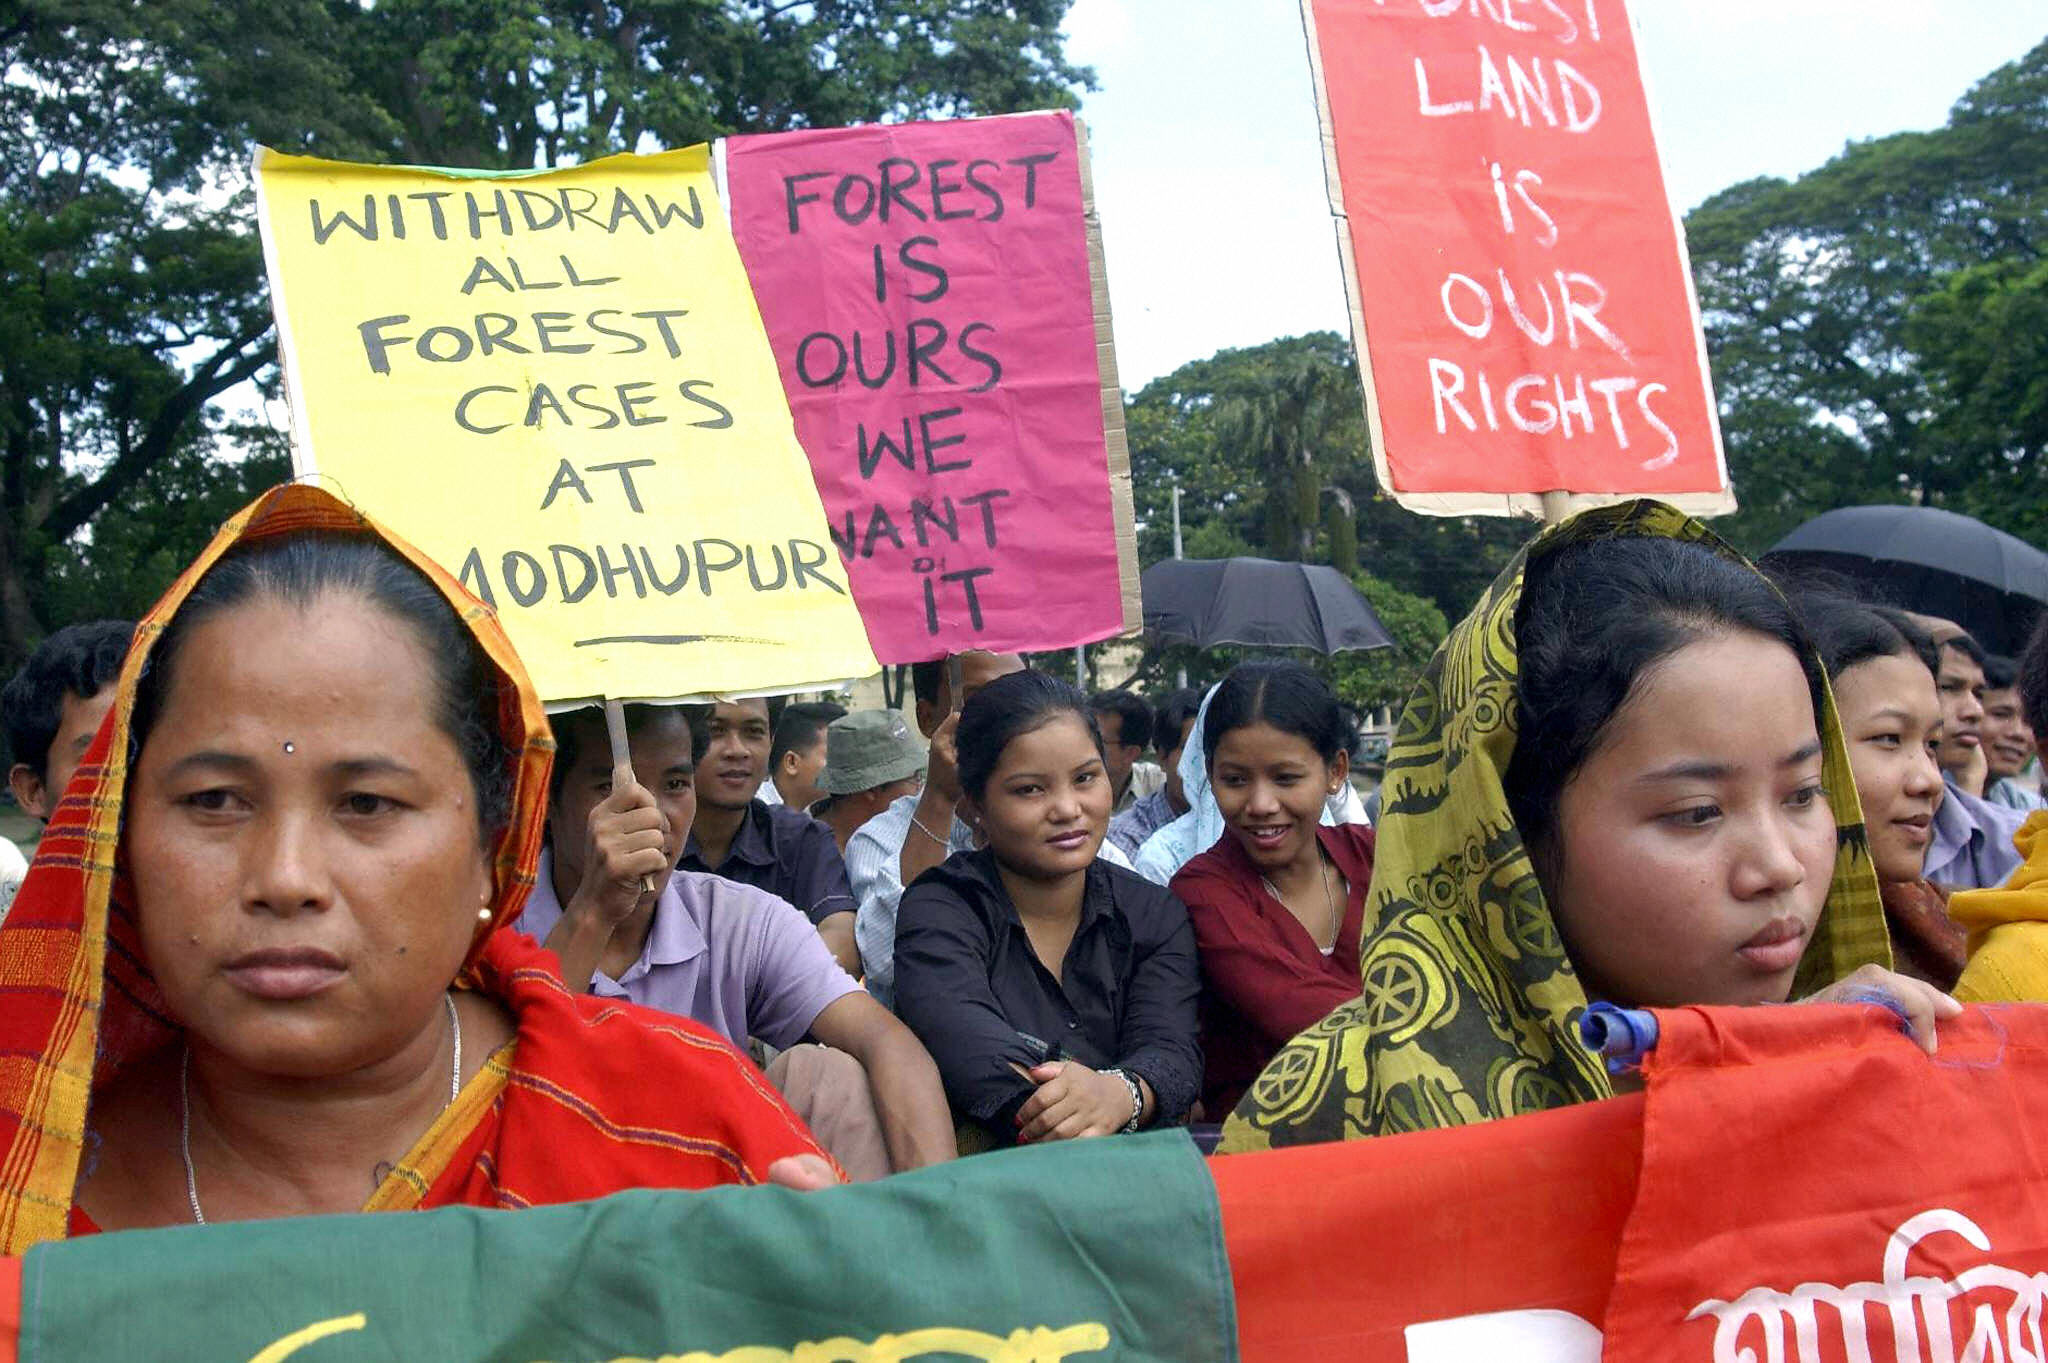 Indigenous Bangladeshi women during a demonstration demanding an end to encroaching development on their lands, still asking for the rights Kalpana Chakma fought for before her disappearance (Photo Credit: Shawkat Khan/AFP/Getty Images).